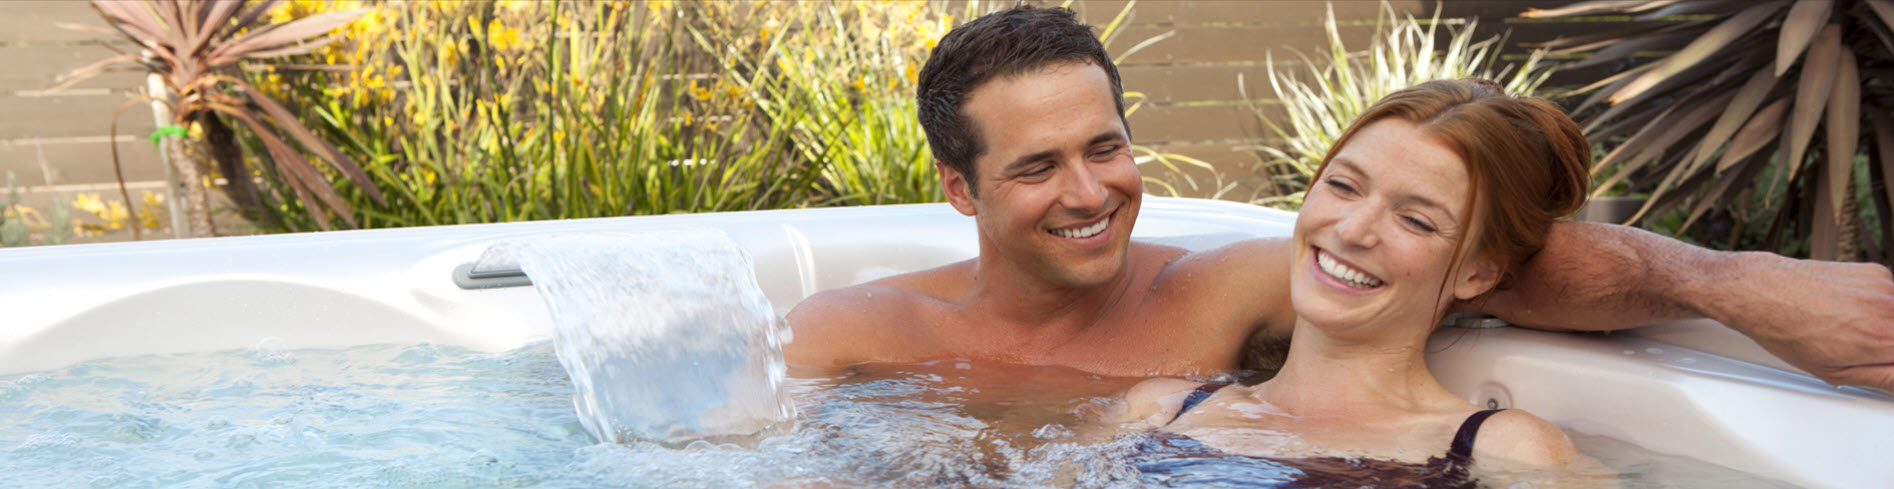 The Amazing Backyard Spa for Health and Wellness, Outdoor Hot Tubs Webster Groves